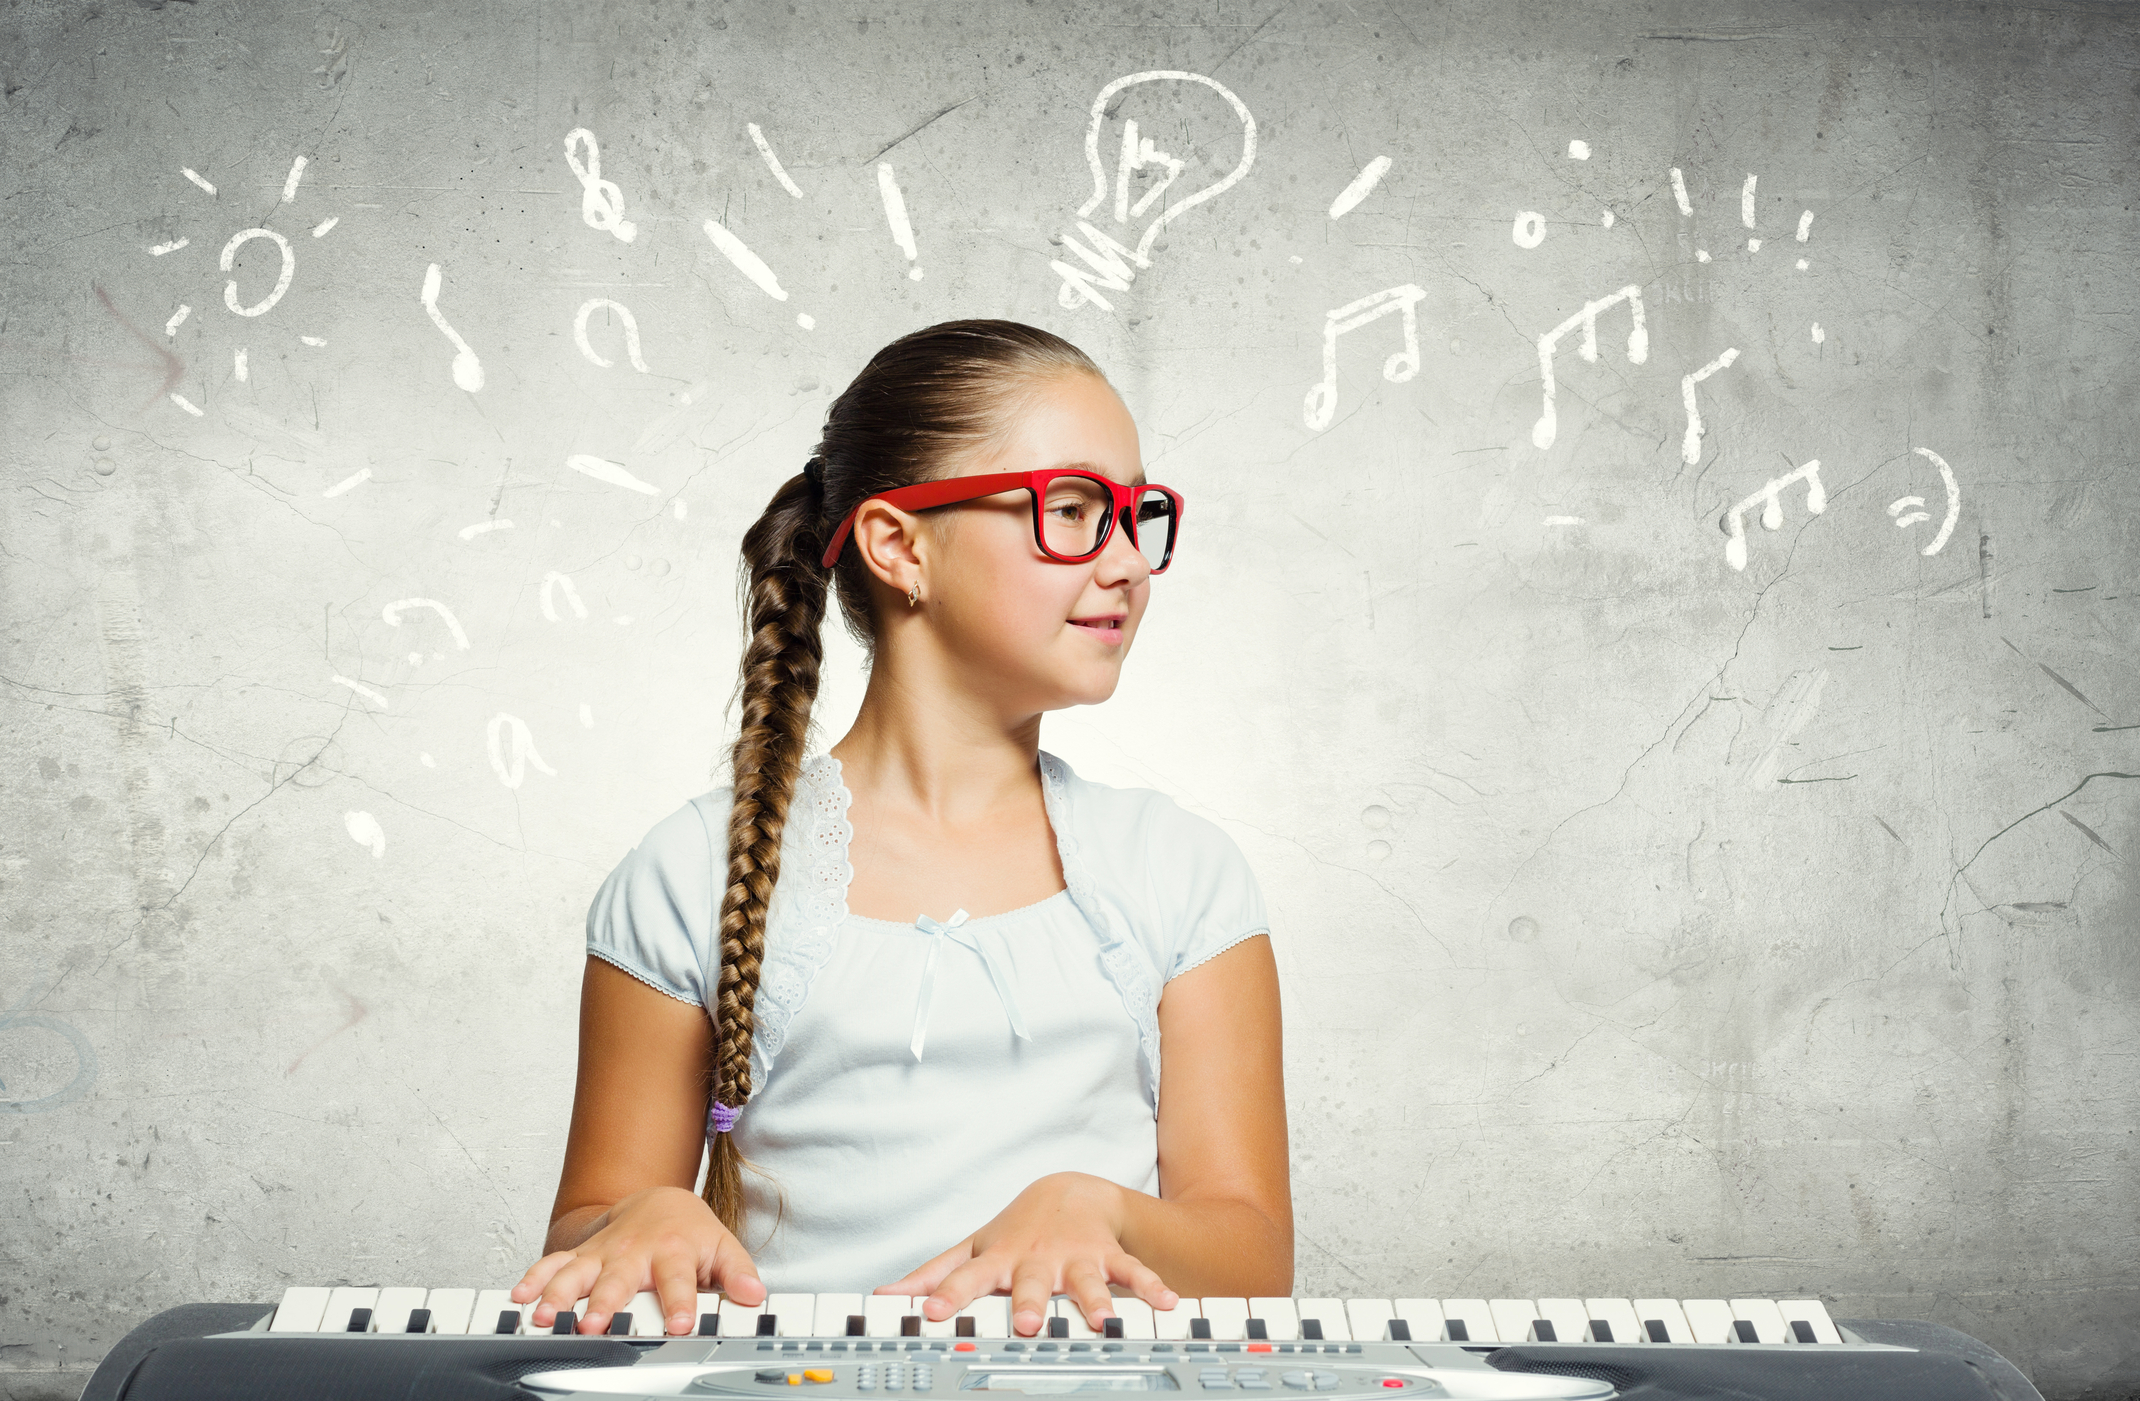 http://www.dreamstime.com/royalty-free-stock-image-school-girl-piano-pretty-funny-glasses-playing-image38544146